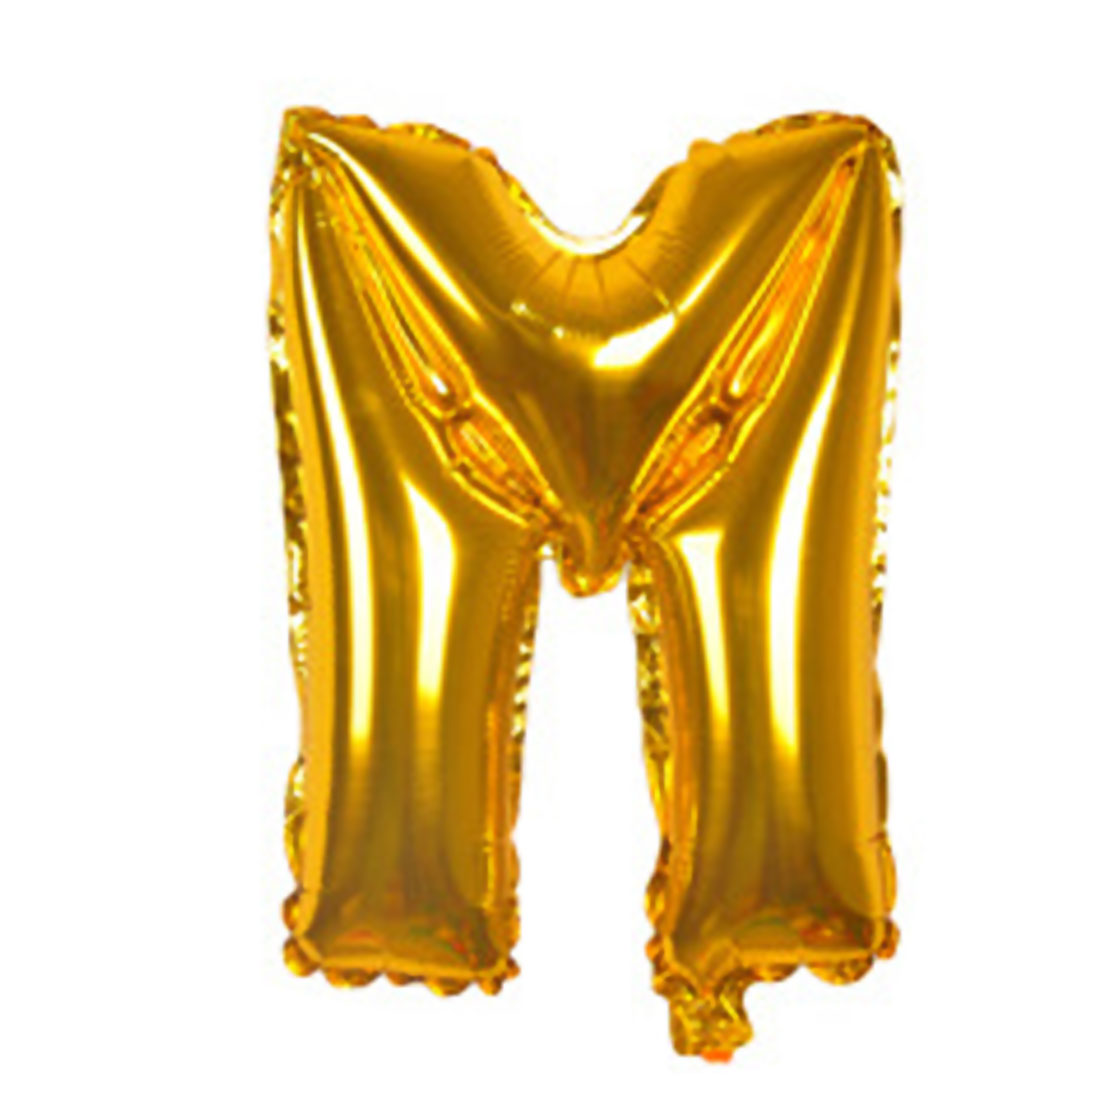 "Unique Bargains 40"" Gold Tone Foil Letter M Balloon Helium Birthday Wedding Festival Decor"